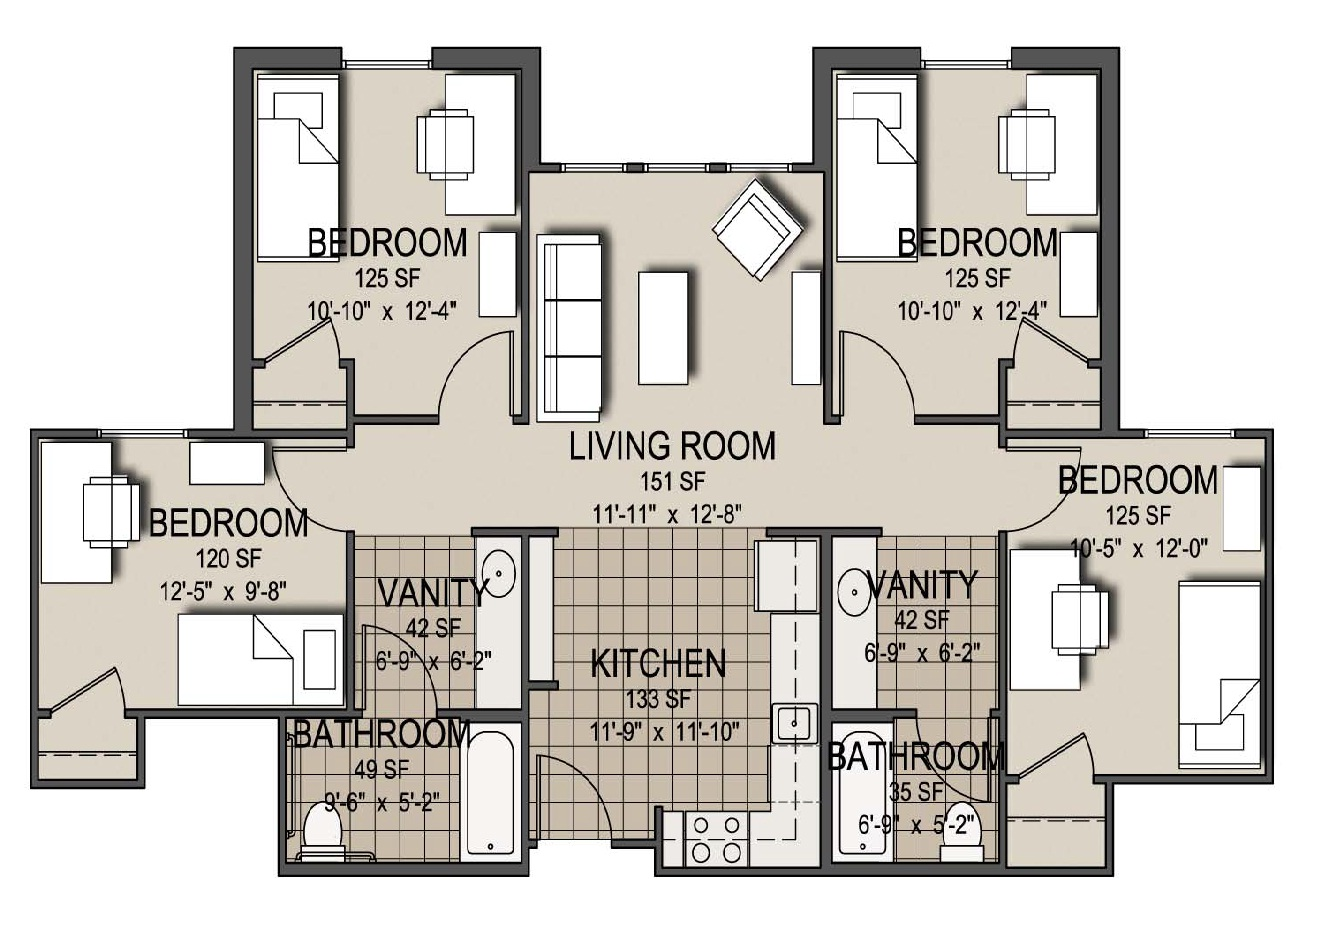 Patriot Village Floor Plans - UT Tyler